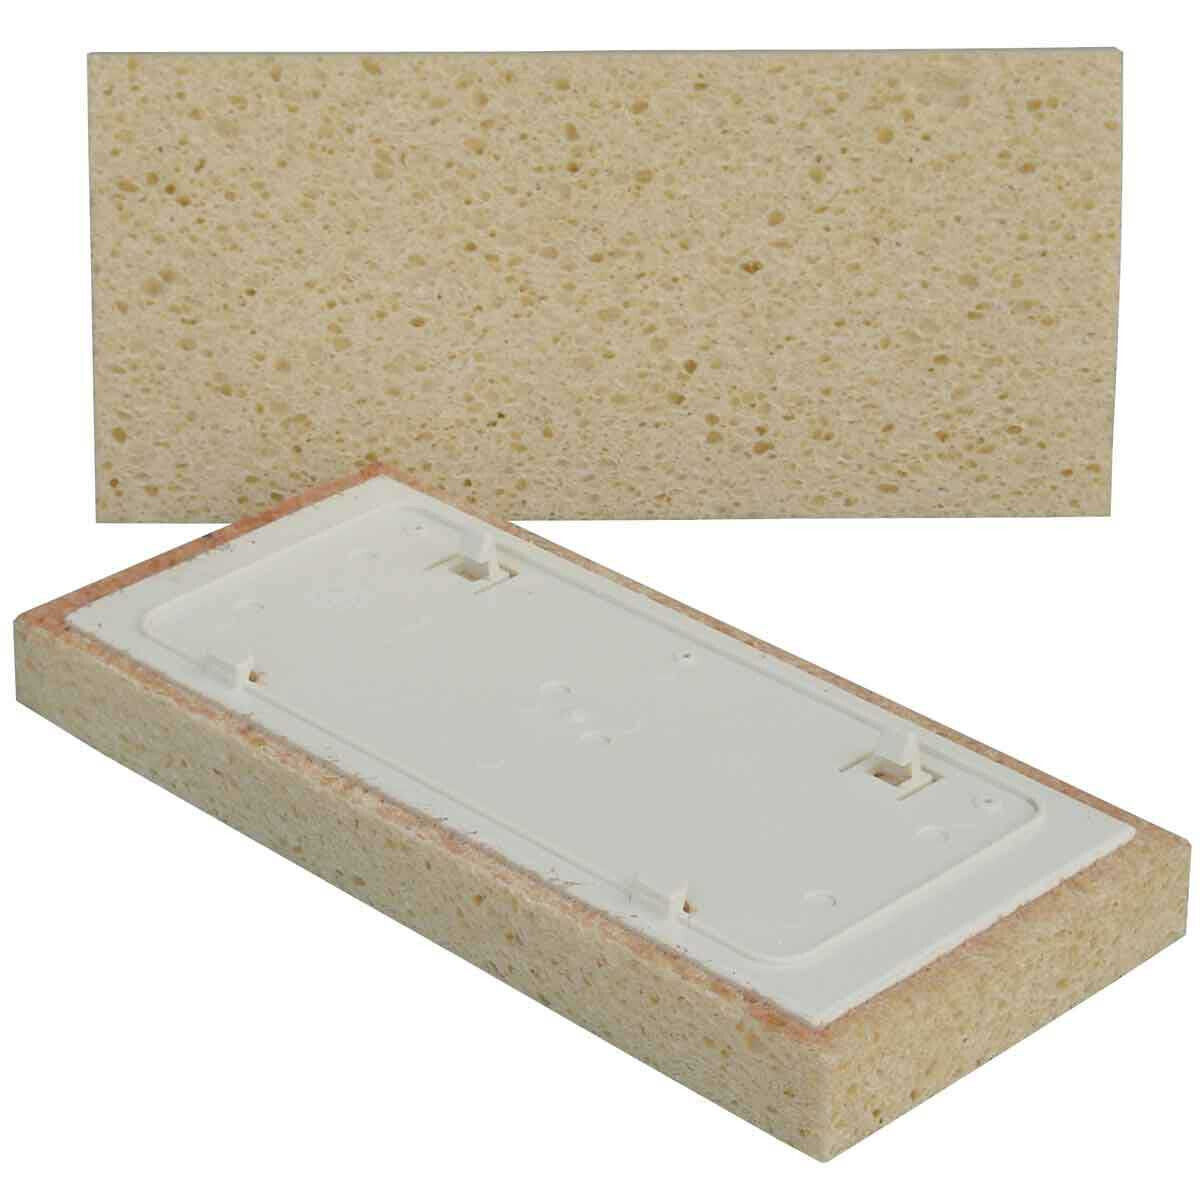 Raimondi Epoxy Grout Sponge